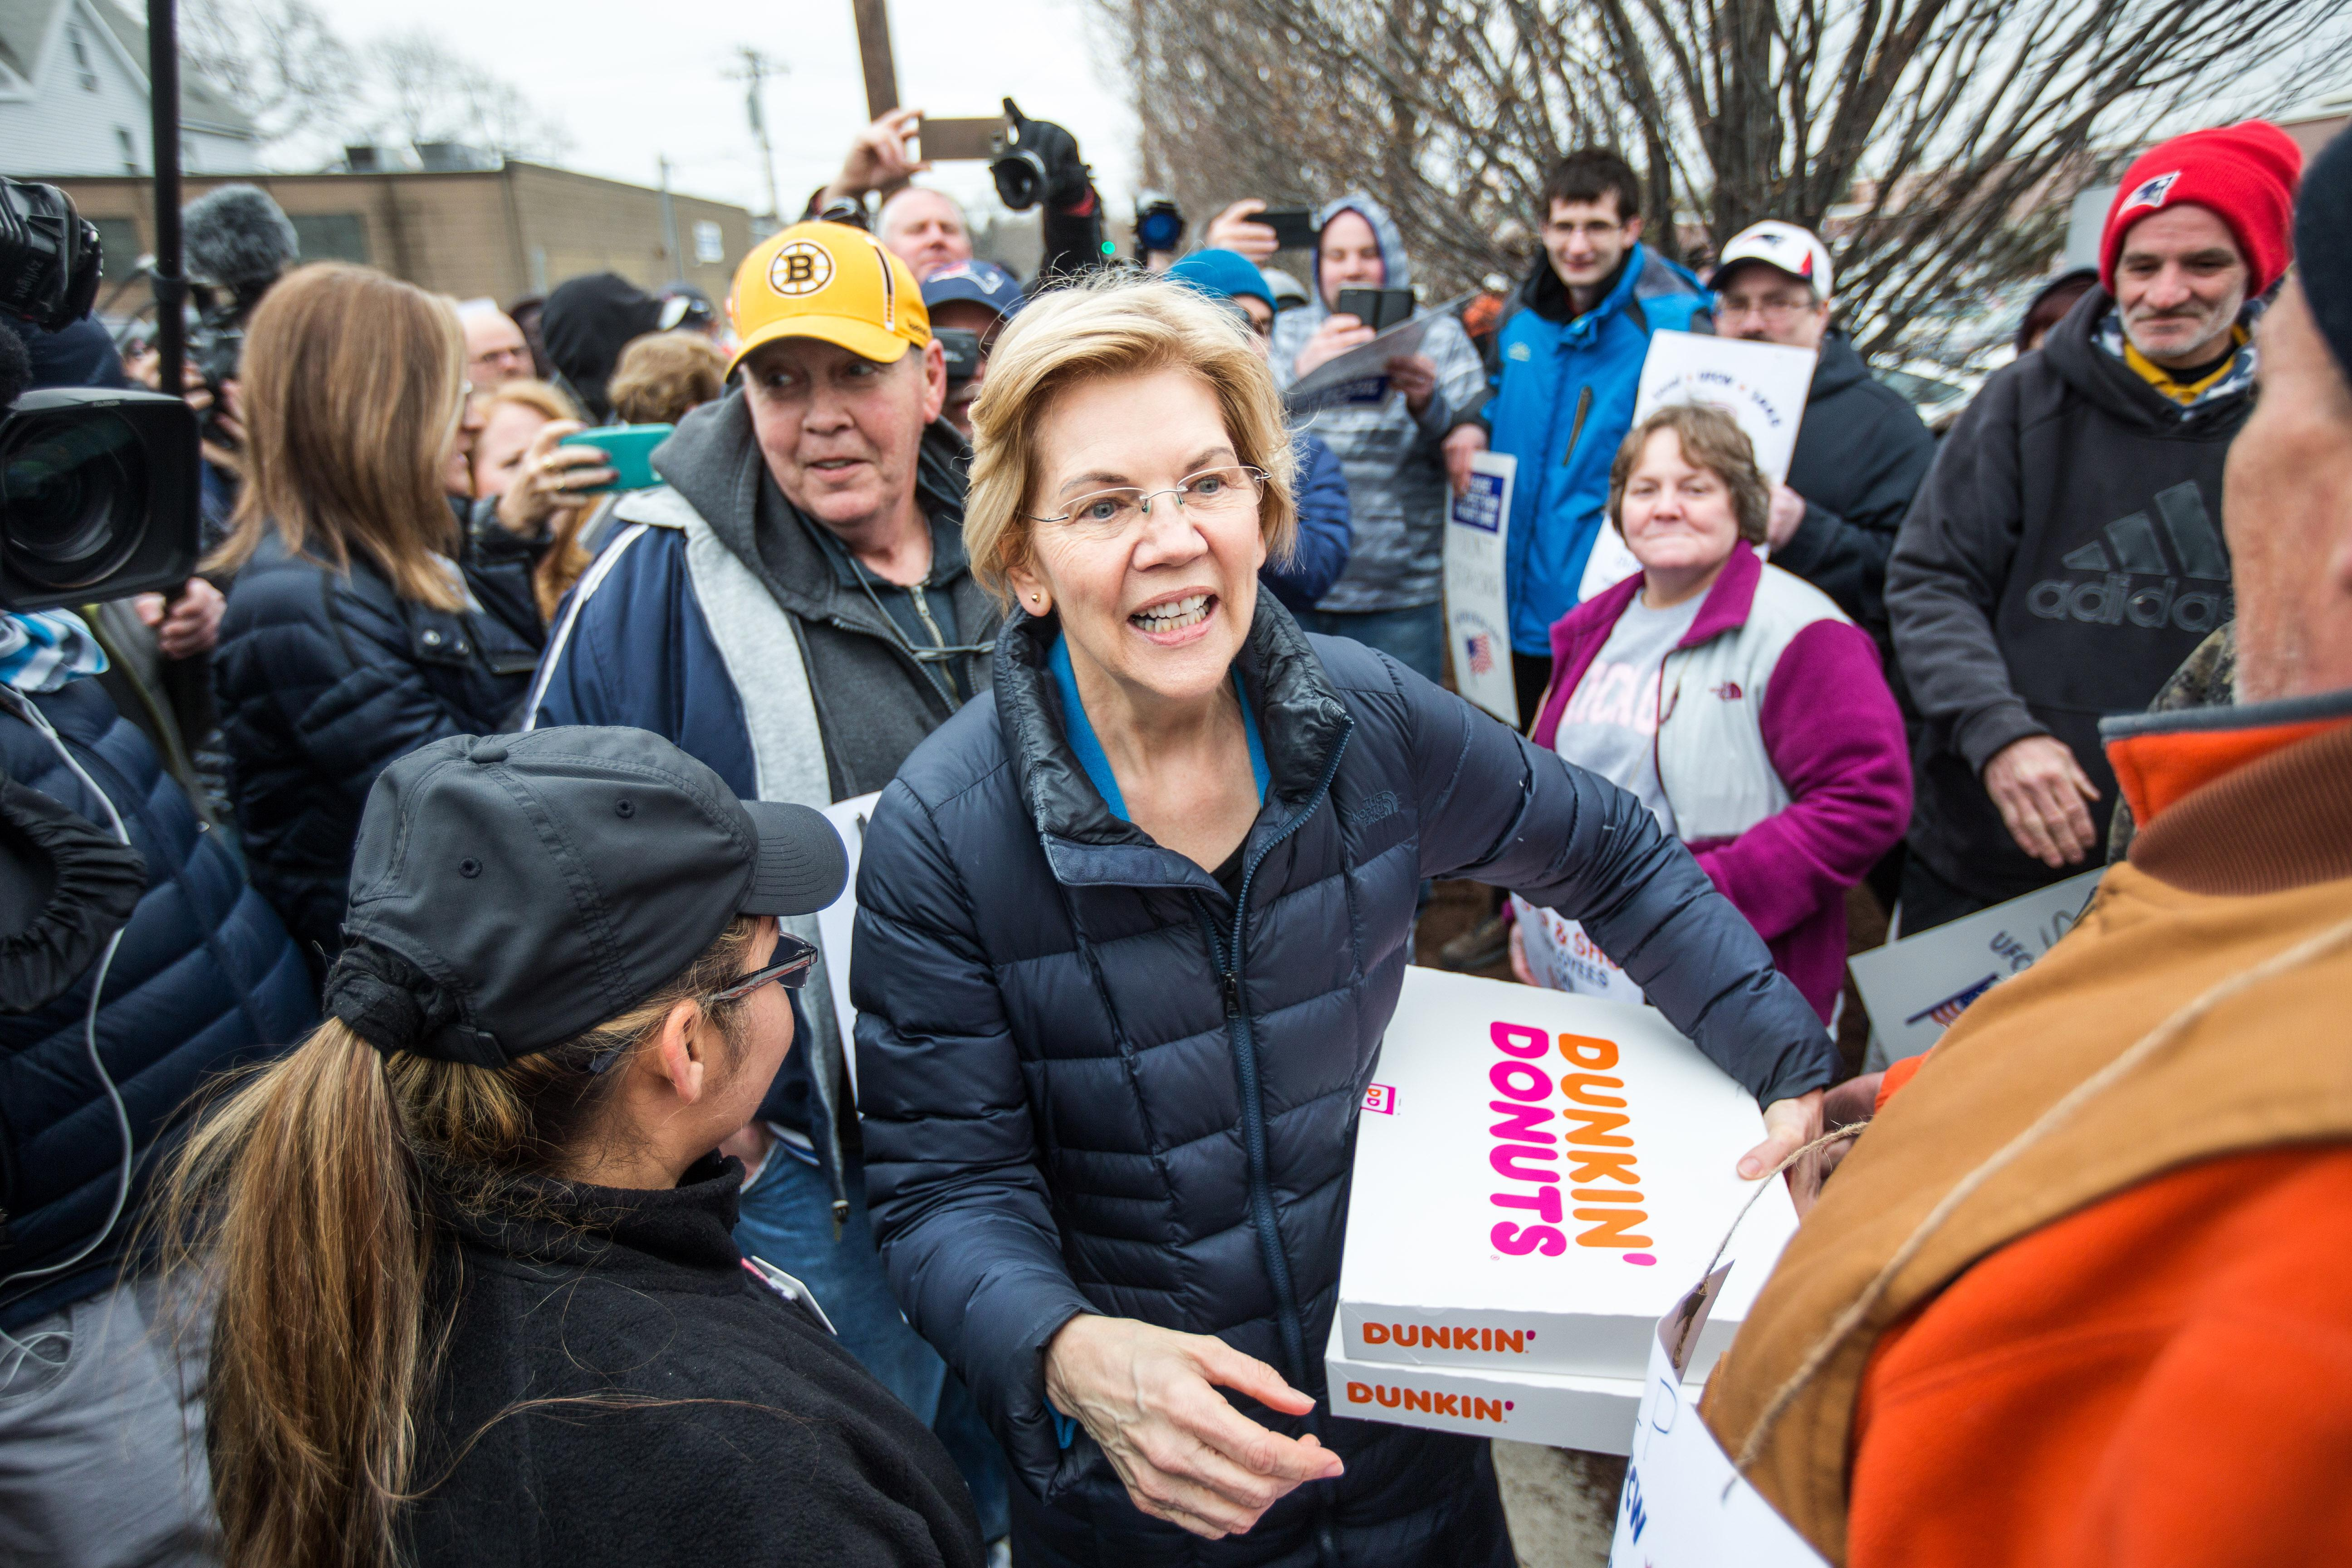 Elizabeth Warren holds two boxes from Dunkin' Donuts amid a crowd of strikers.